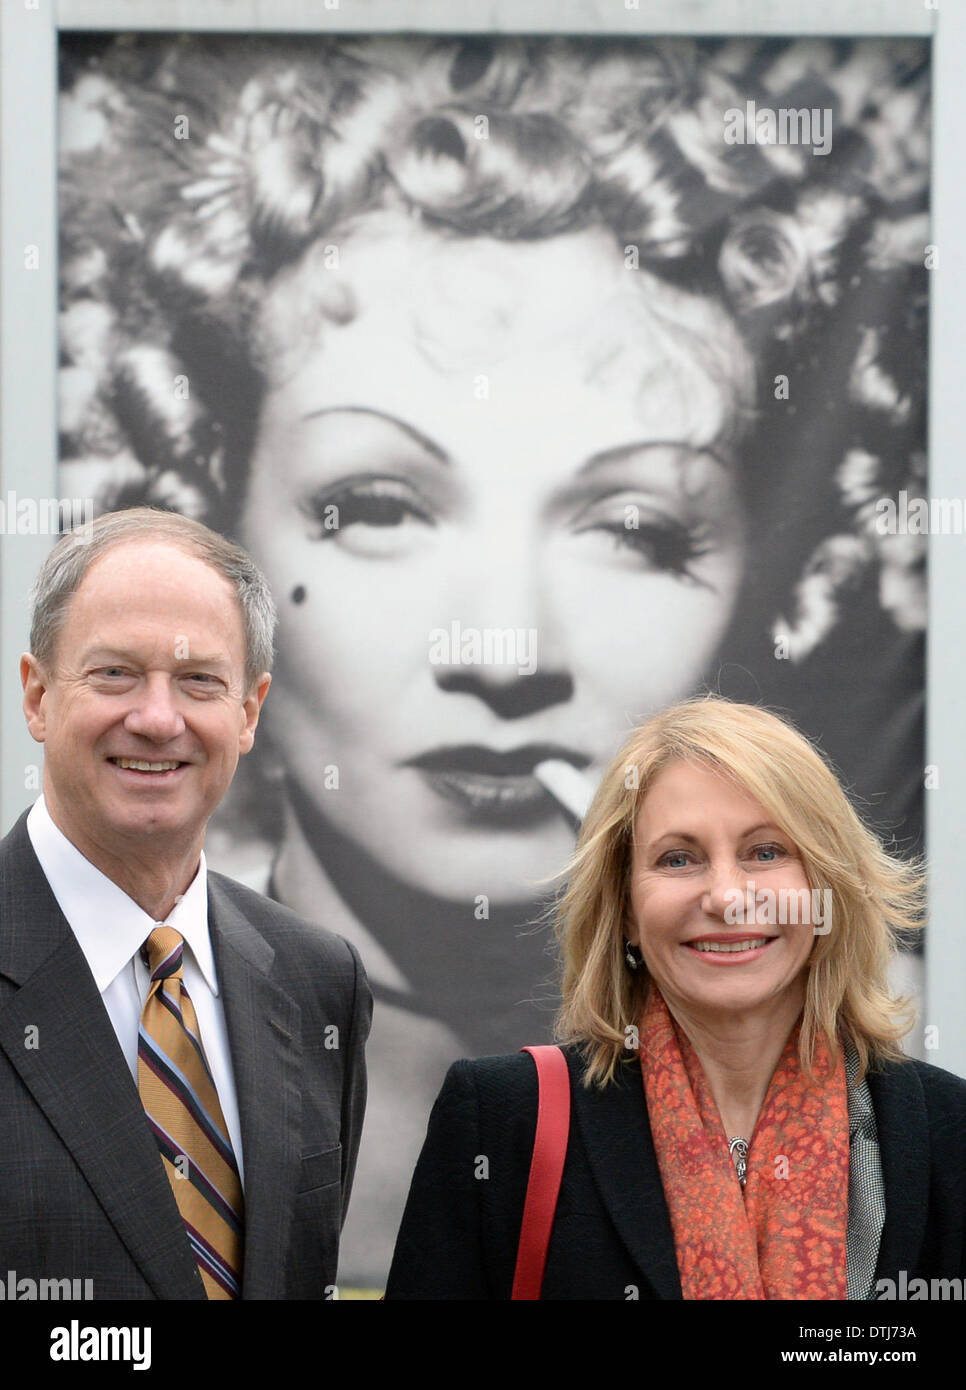 US ambassador John Bonell Emerson in Germany and his wife Kimberly Marteau Emerson stand in front of a placat of German actress Marlene Dietrich at the Babelsberg Studios in Berlin, Germany 19 February 2014. The diplomat visitied the media location together with the Premier of Brandenburg during his first courtesy call in Brandenburg. The ambassador informed himself about US film productions which were realized in Babelsberg. Photo: RALF HIRSCHBERGER/dpa - Stock Image